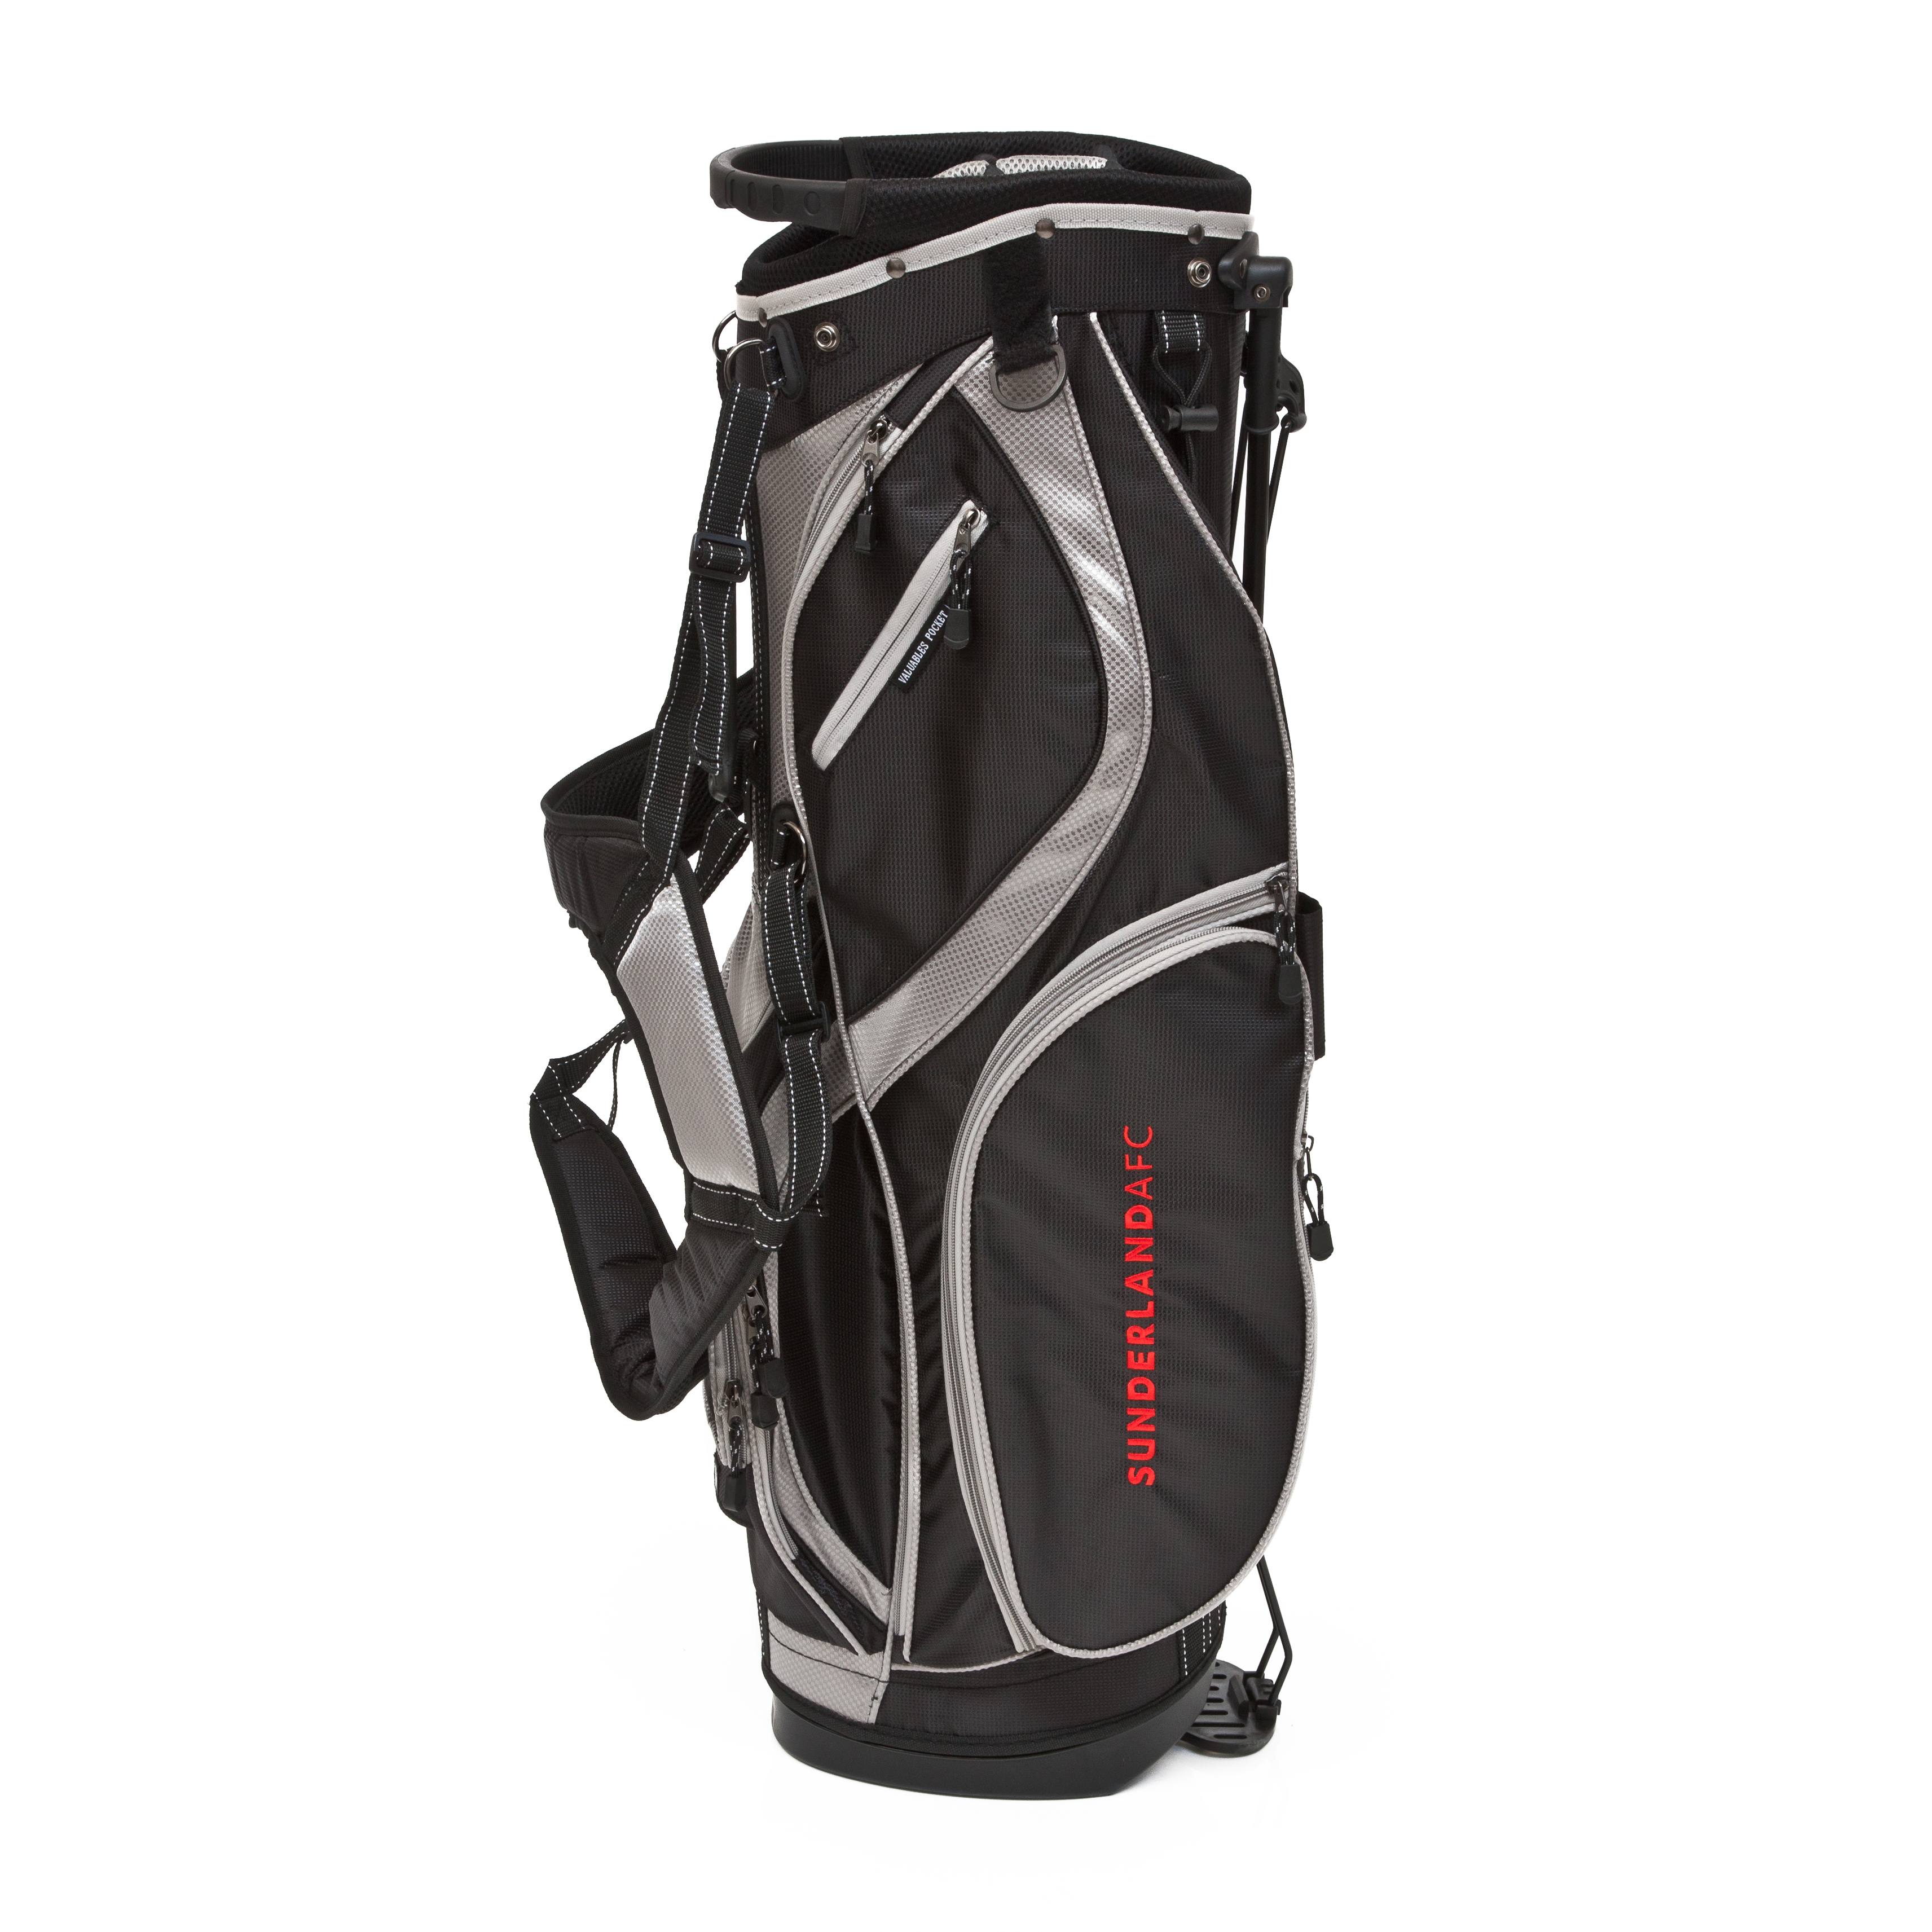 Sunderland Executive Golf Stand Bag - Black/Silver